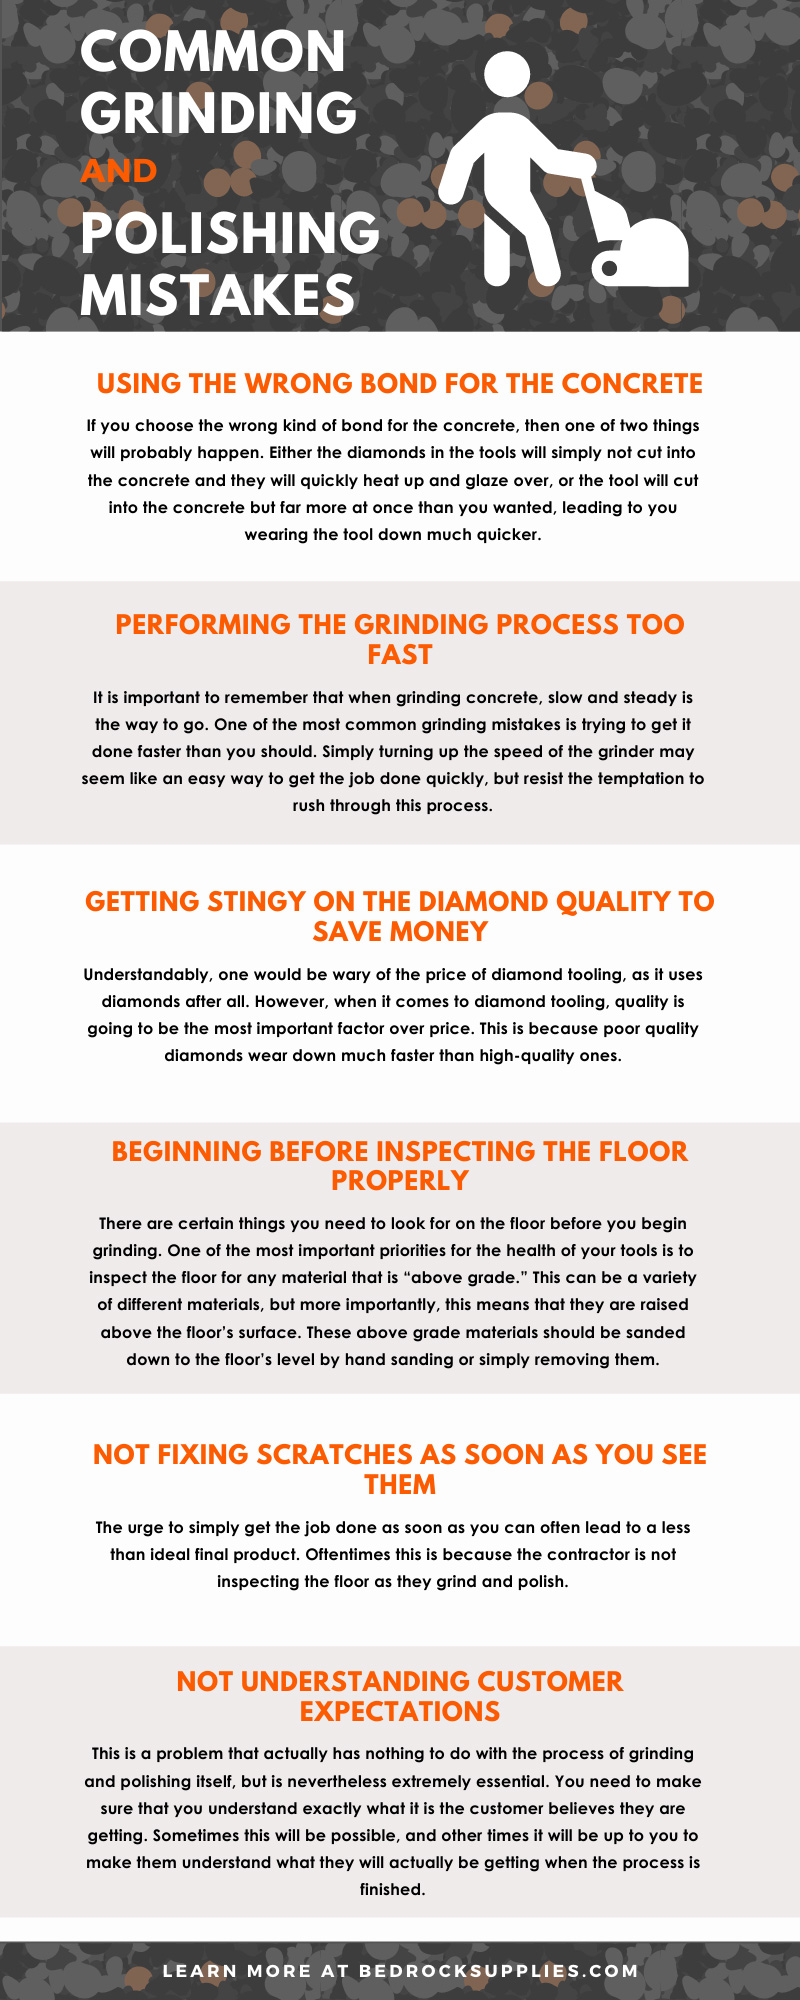 Common Grinding and Polishing Mistakes Infographic